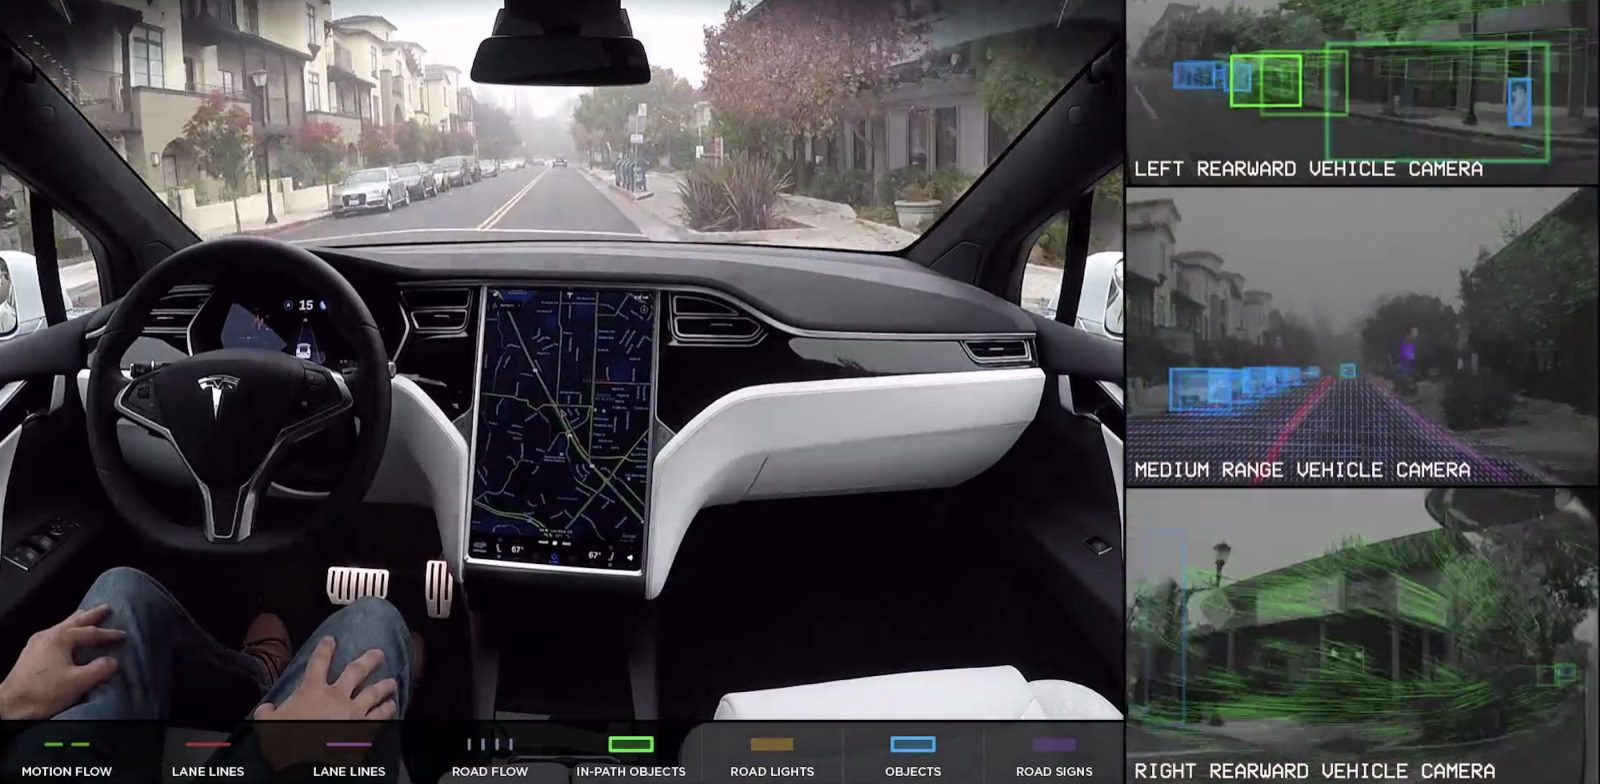 Tesla leaks info about new self-driving computer in latest